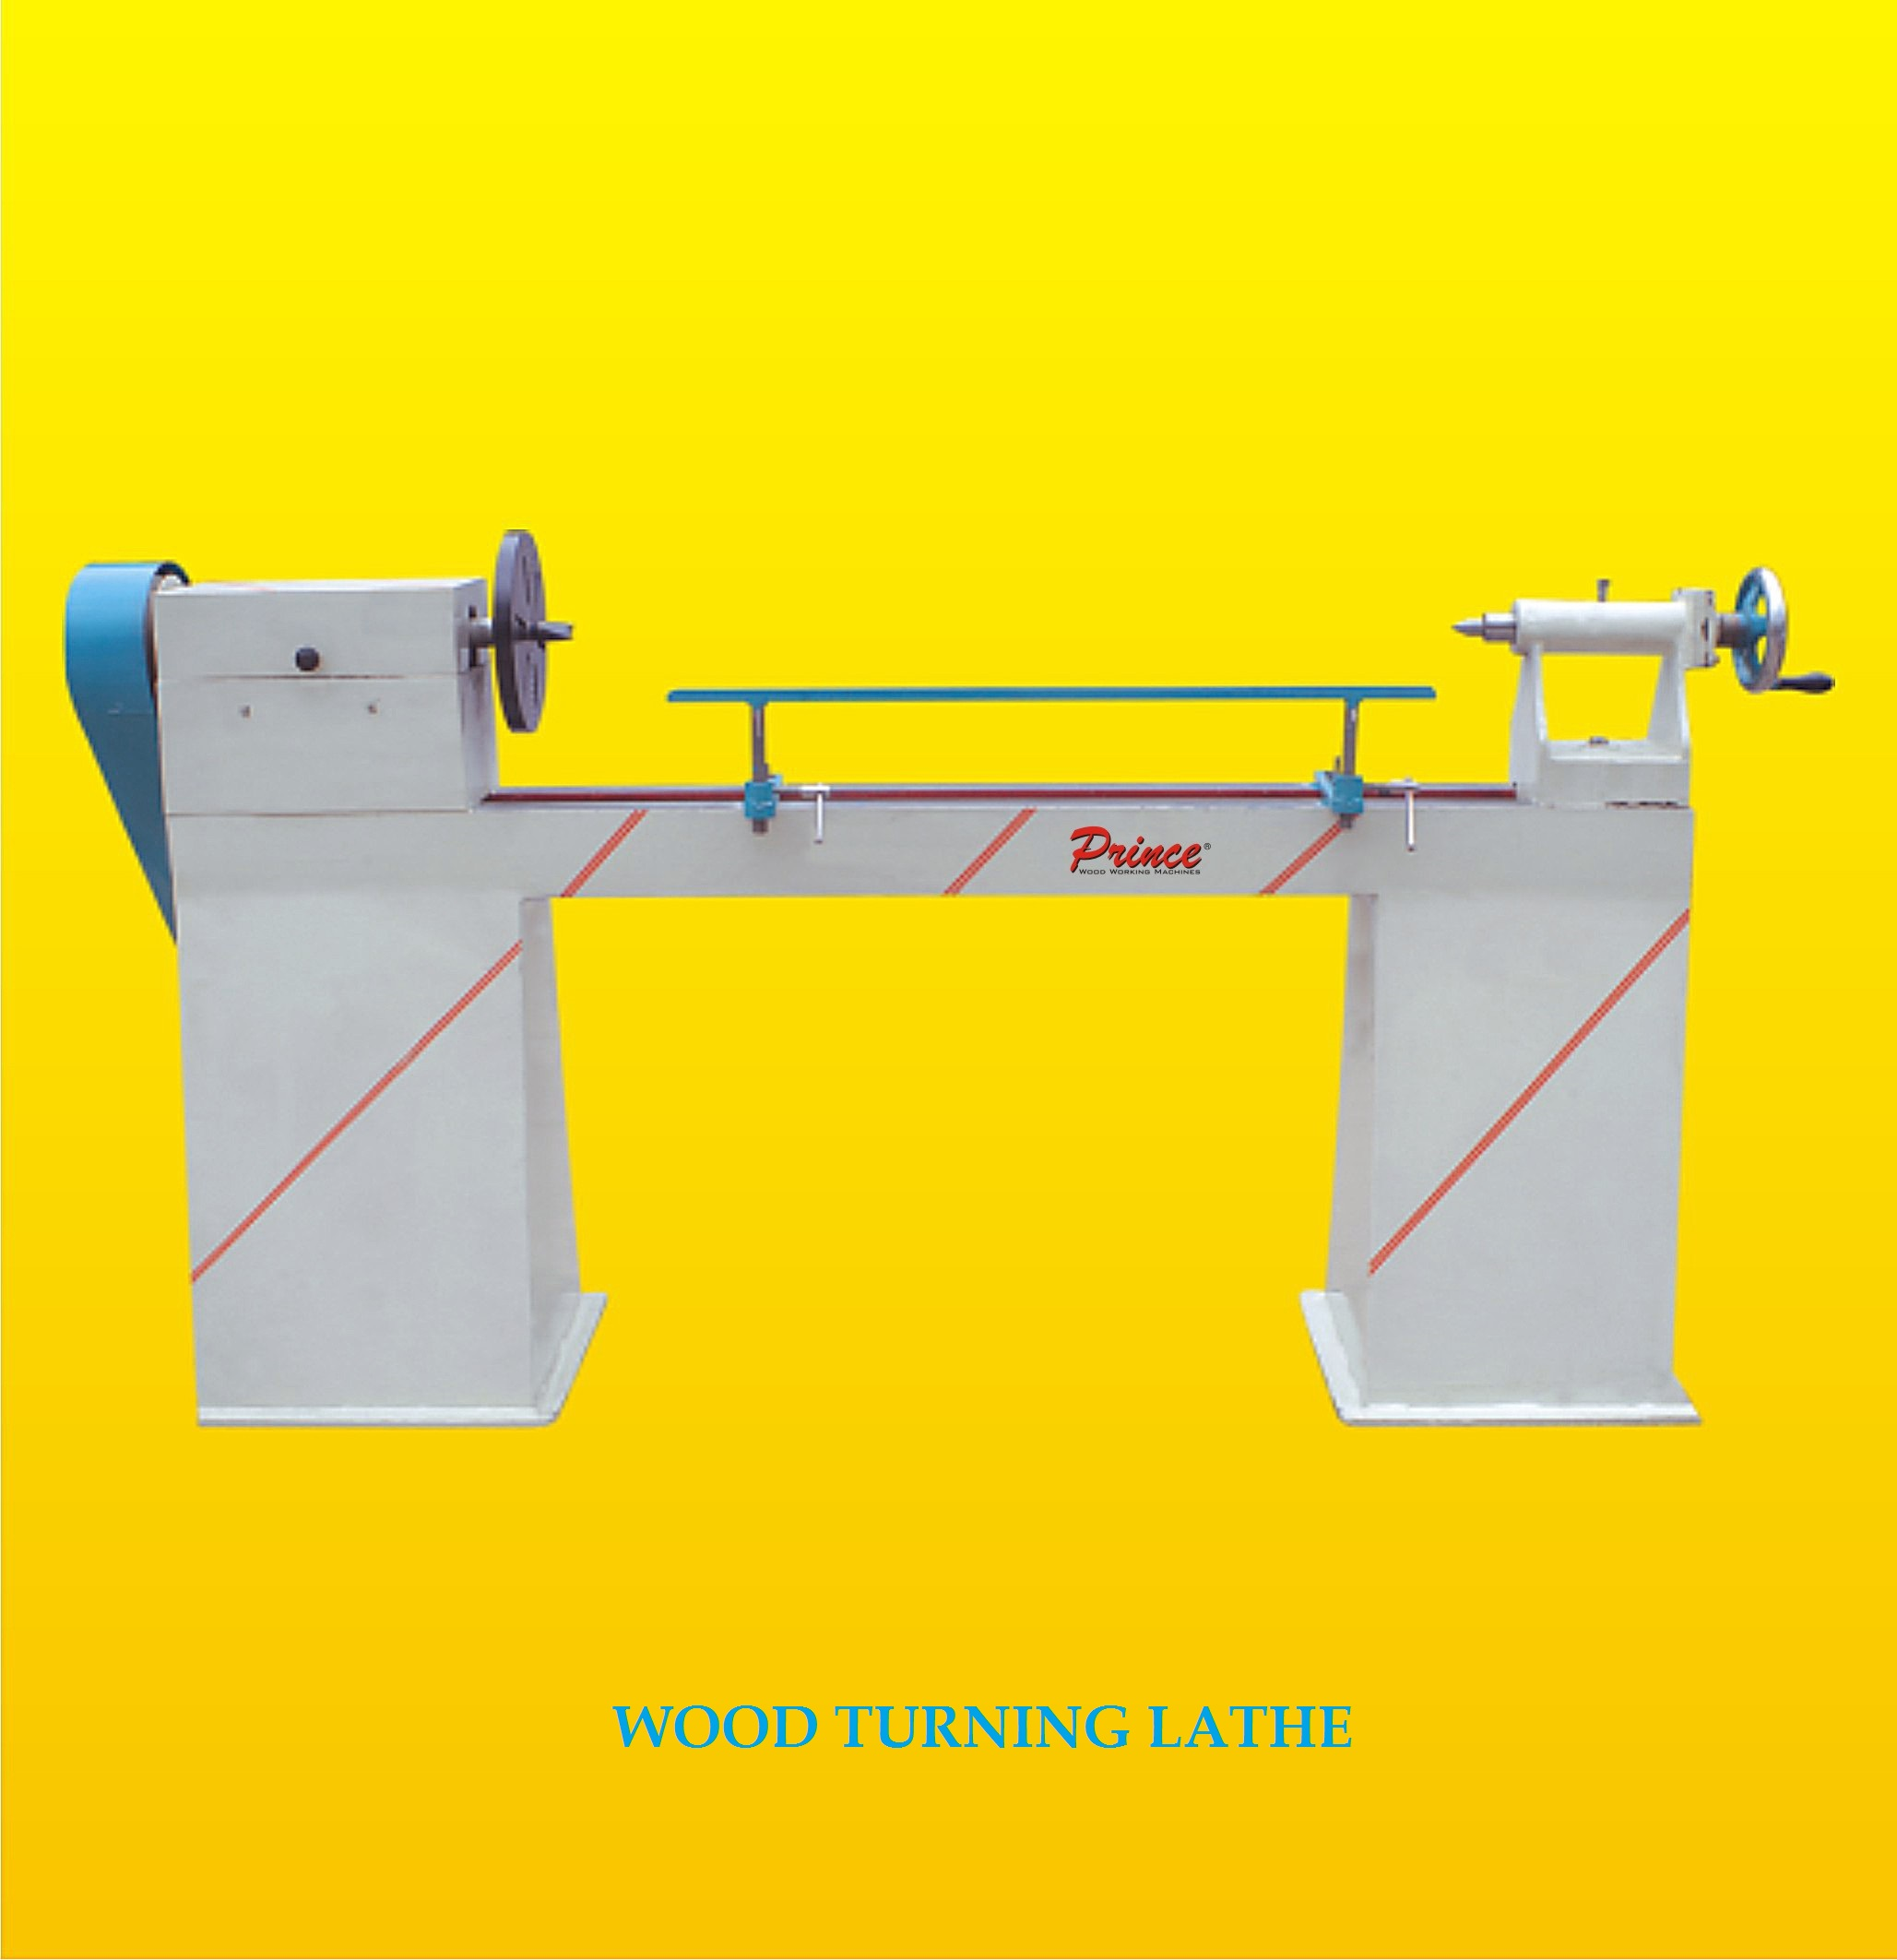 cnc wood turning machine in india | Quick Woodworking Projects